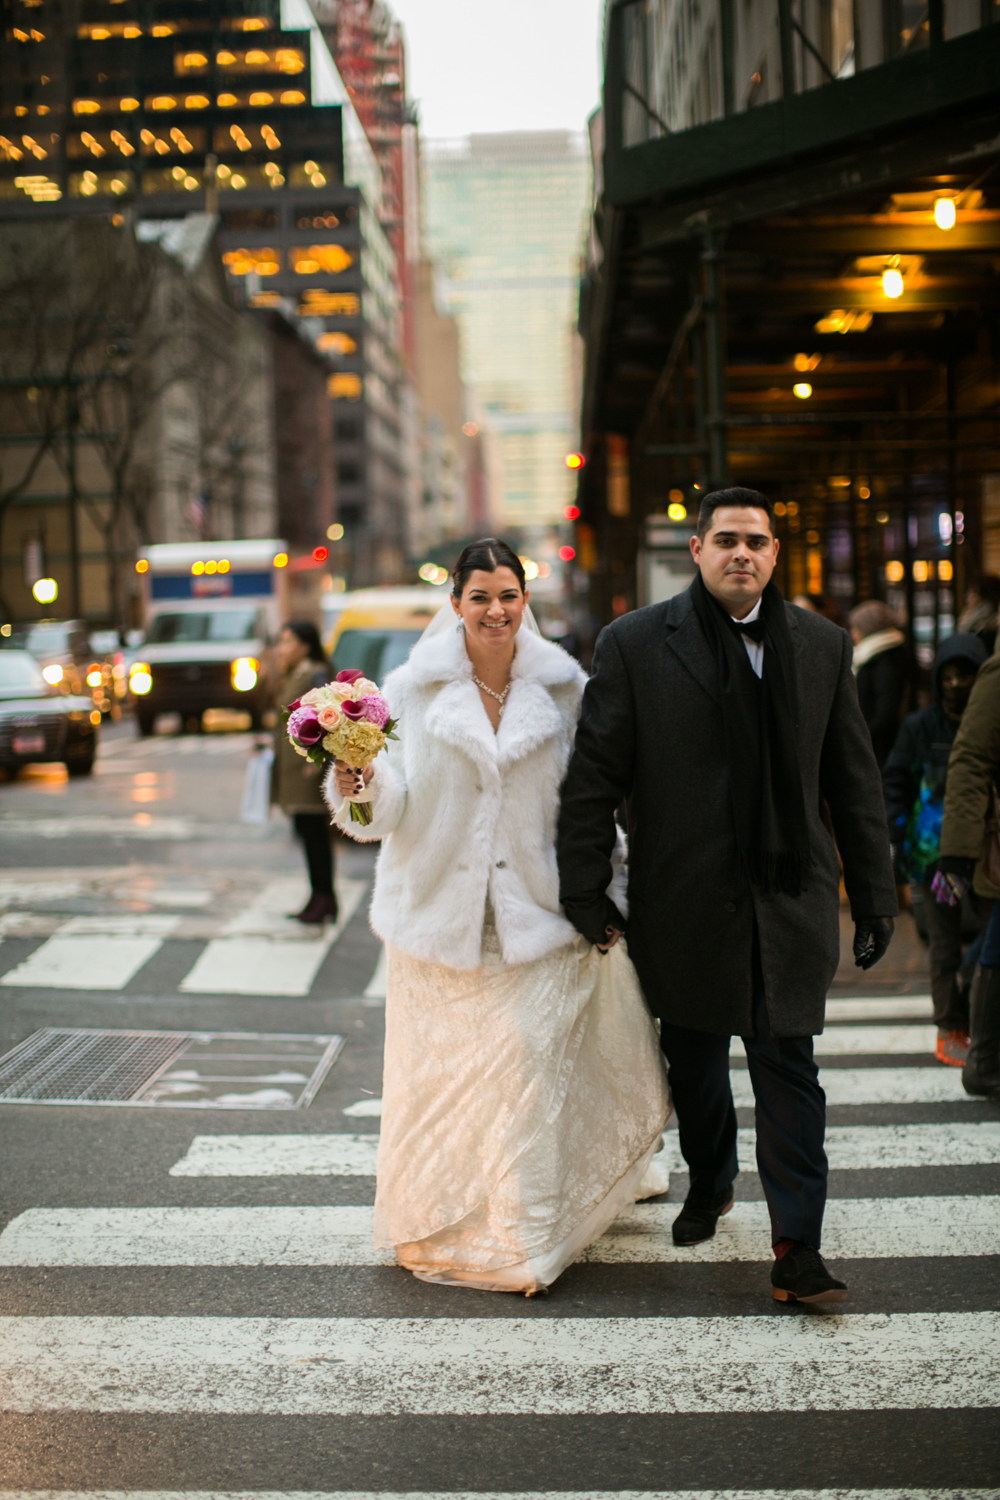 Bride and groom walking through New York City